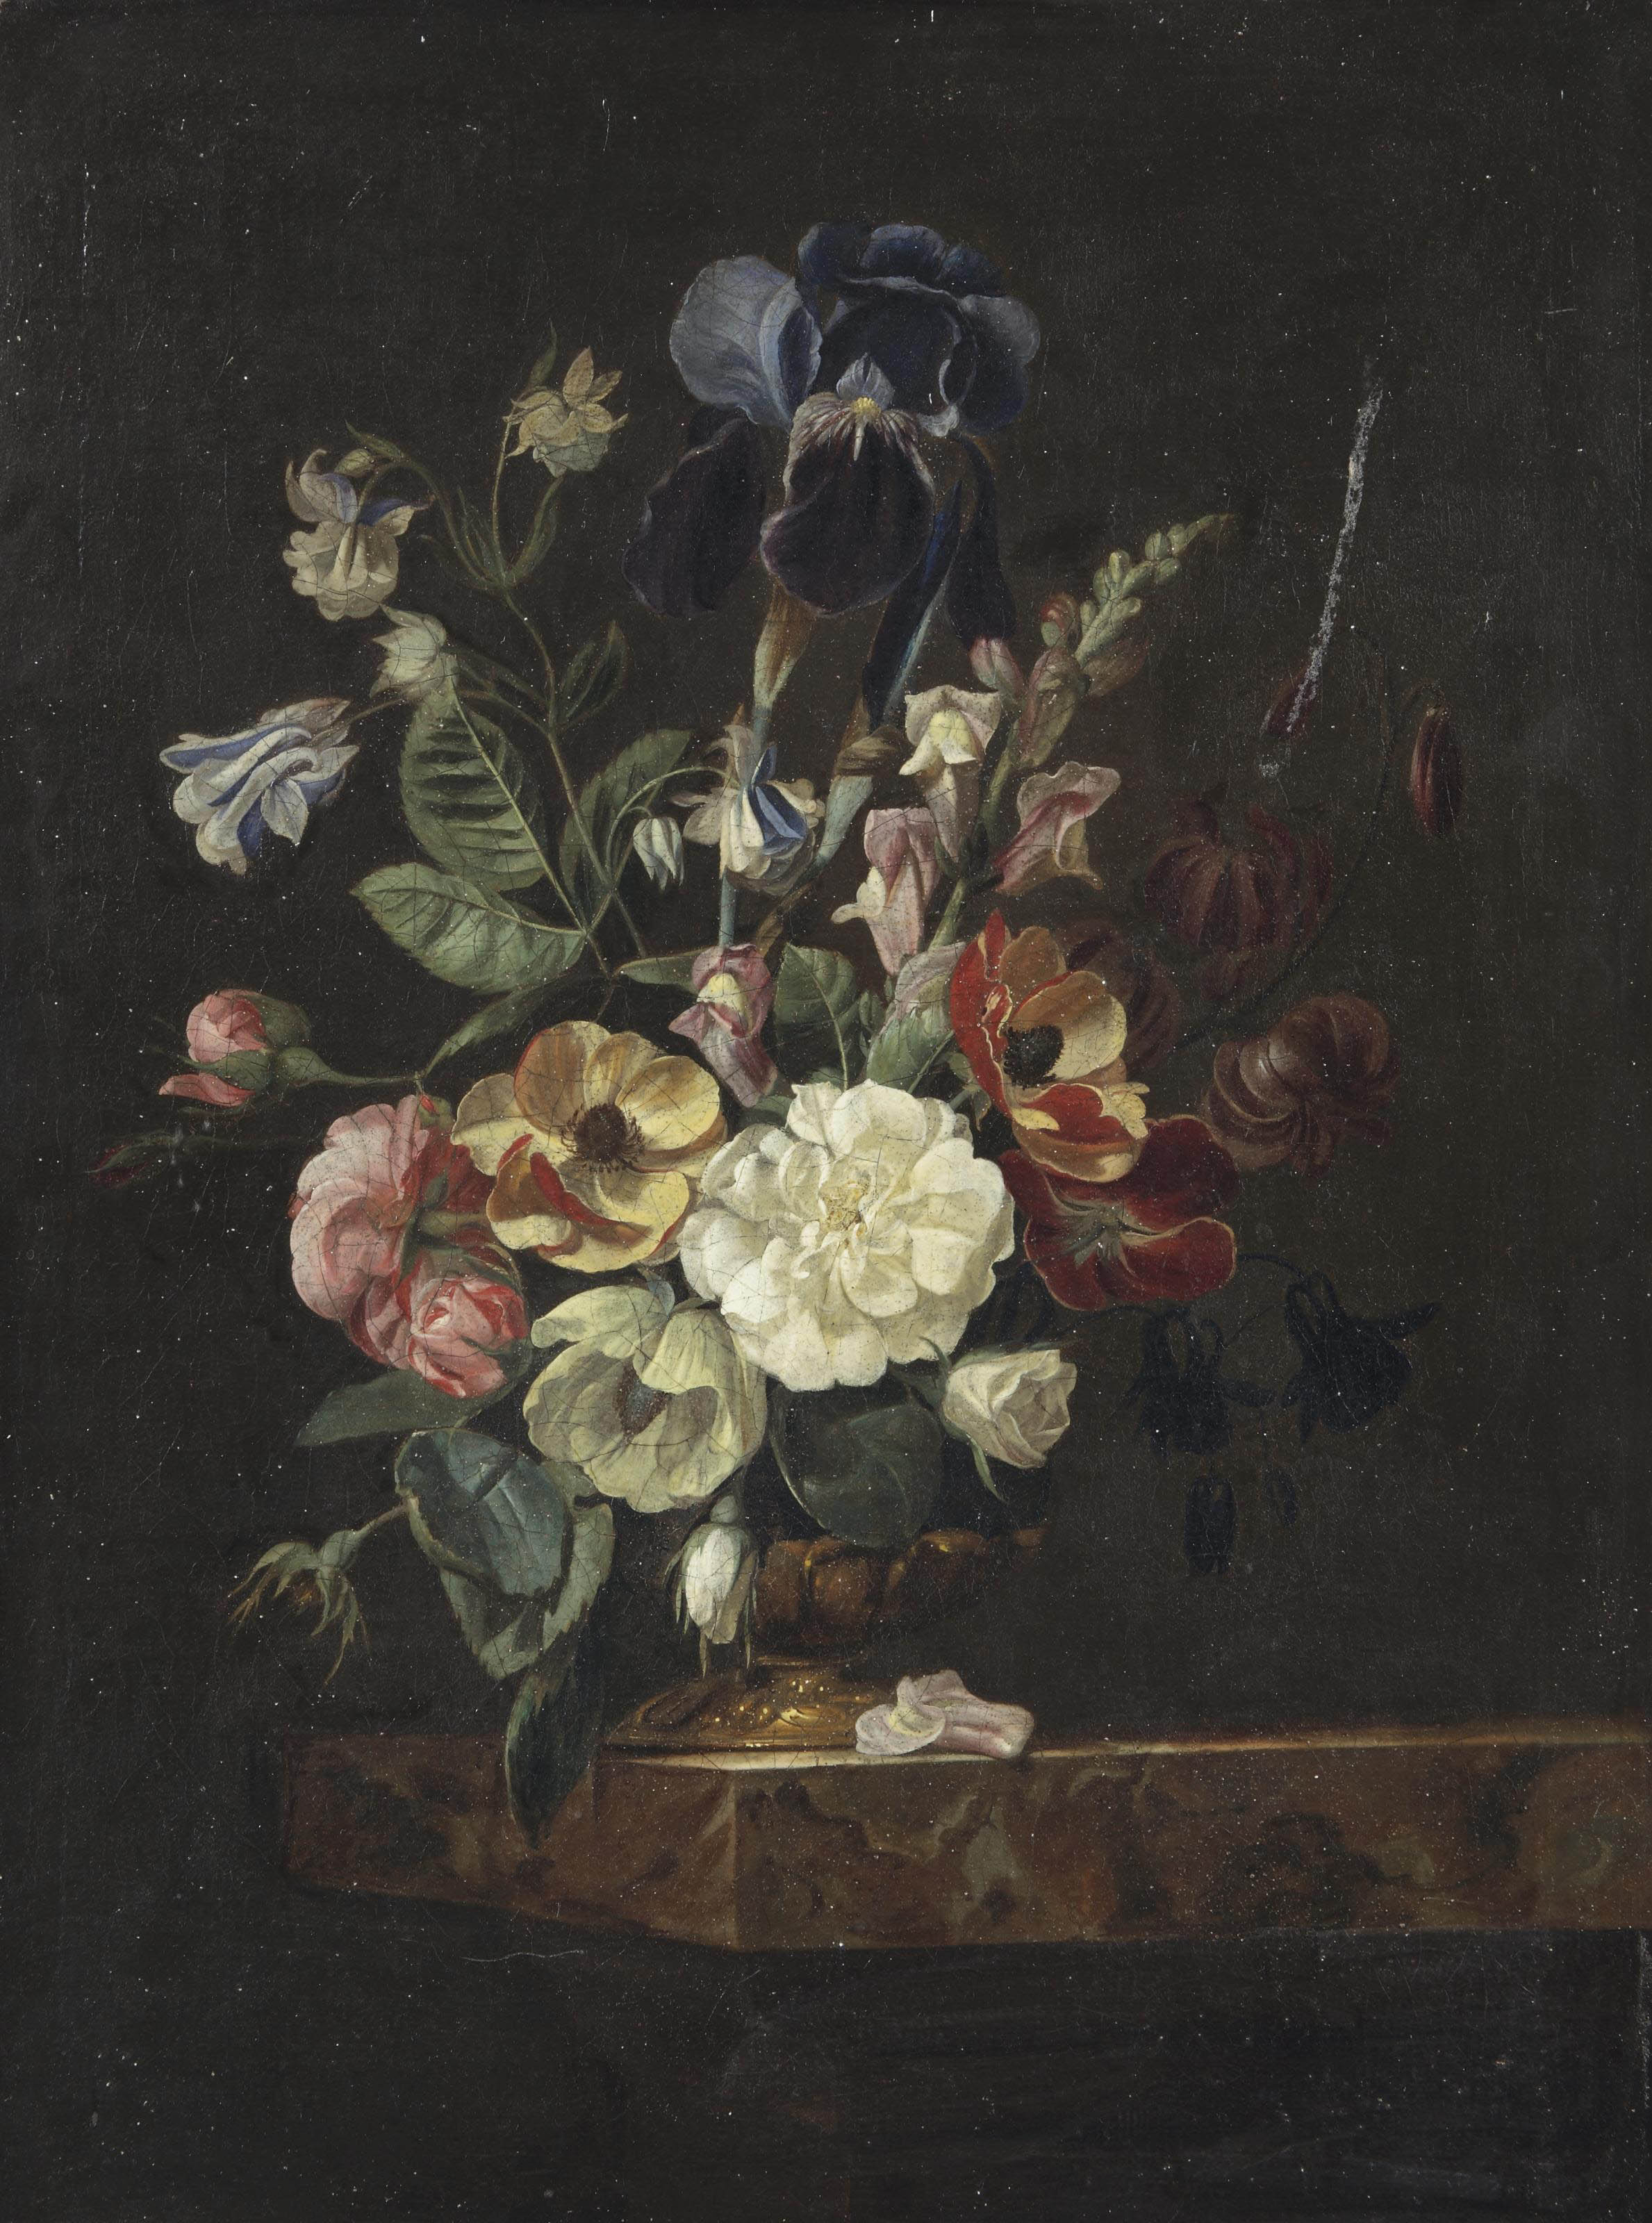 Carnations, blue morning glory, peony, irises and various other flowers in a golden vase on a marble ledge